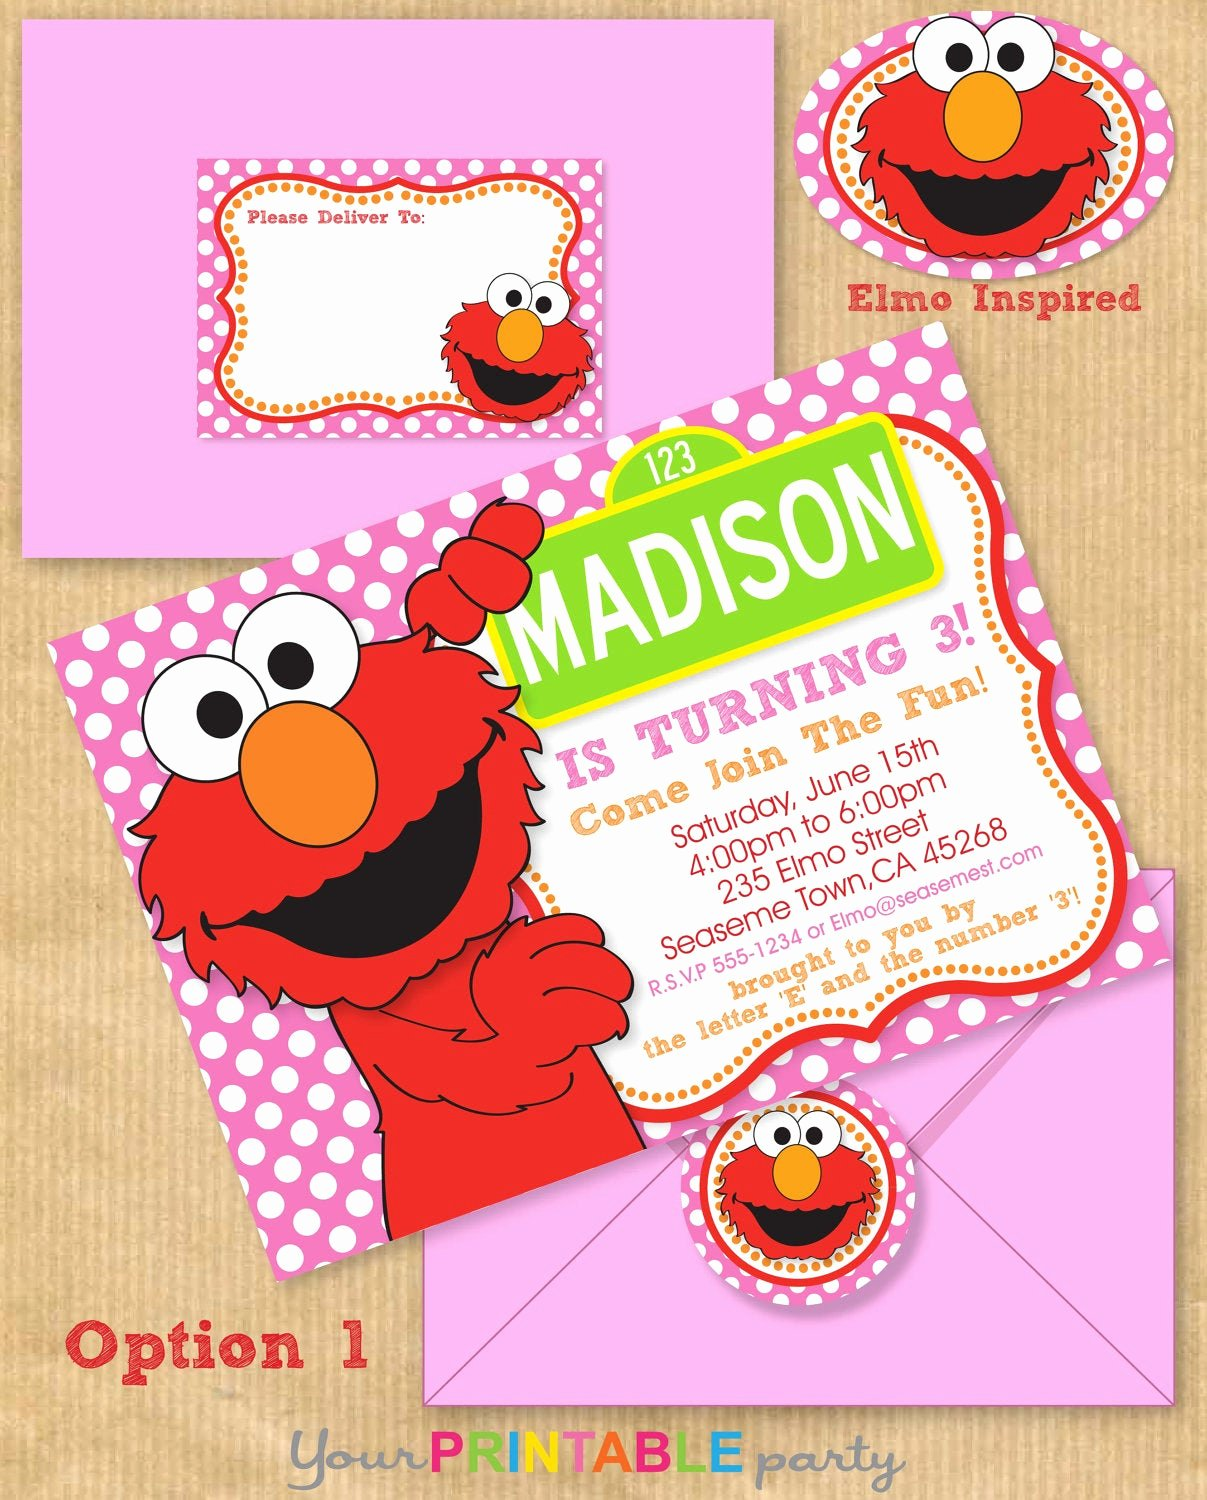 Elmo Birthday Invitation Templates Free Awesome Girls Elmo Party Invitation 5x7 with Address by